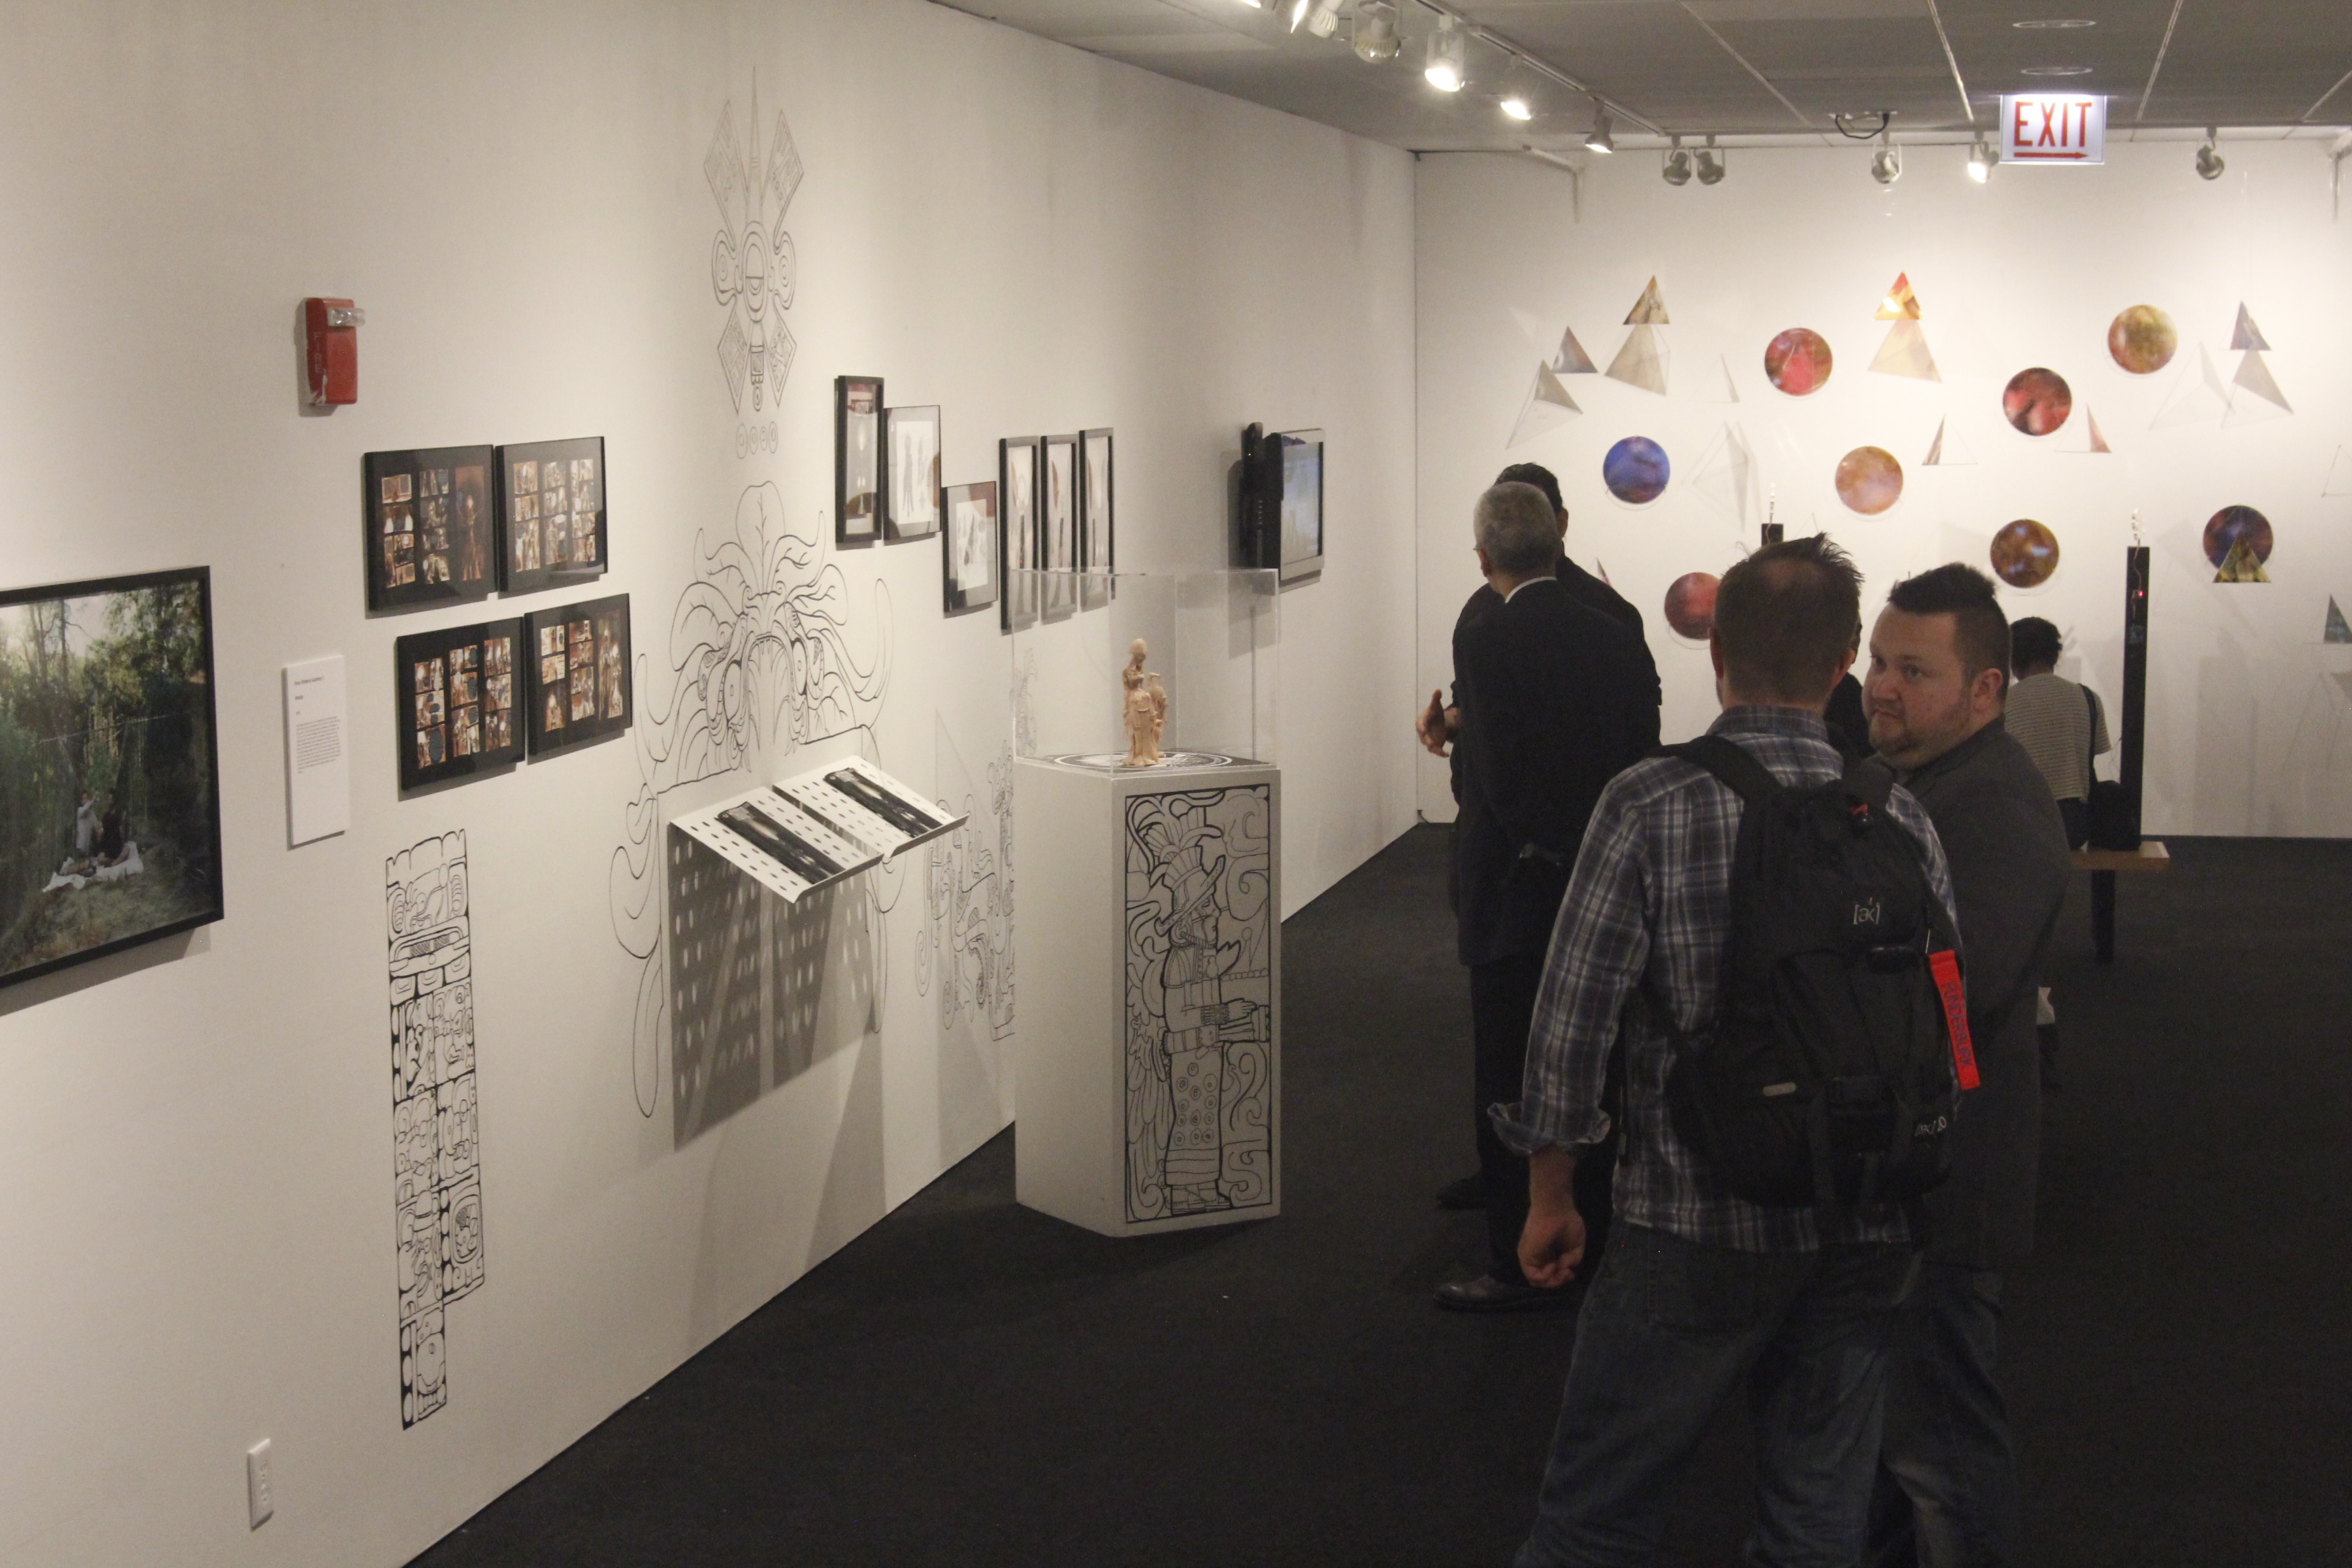 Weisman Award Exhibition Reception: It's All Good